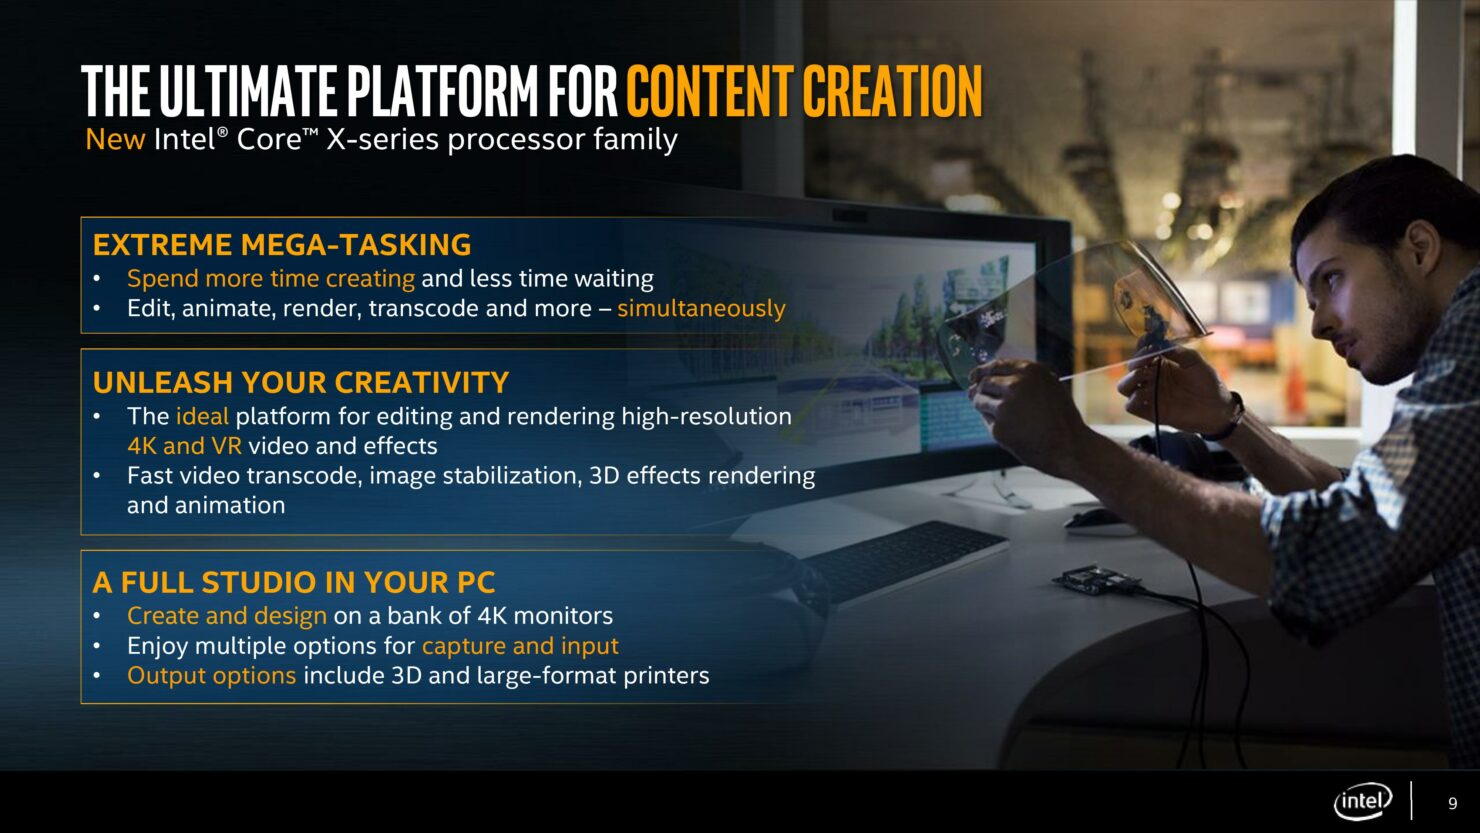 intel-core-x-cpu-skylake-x-and-kaby-lake-x-x299-hedt-platform-launch_content-creator